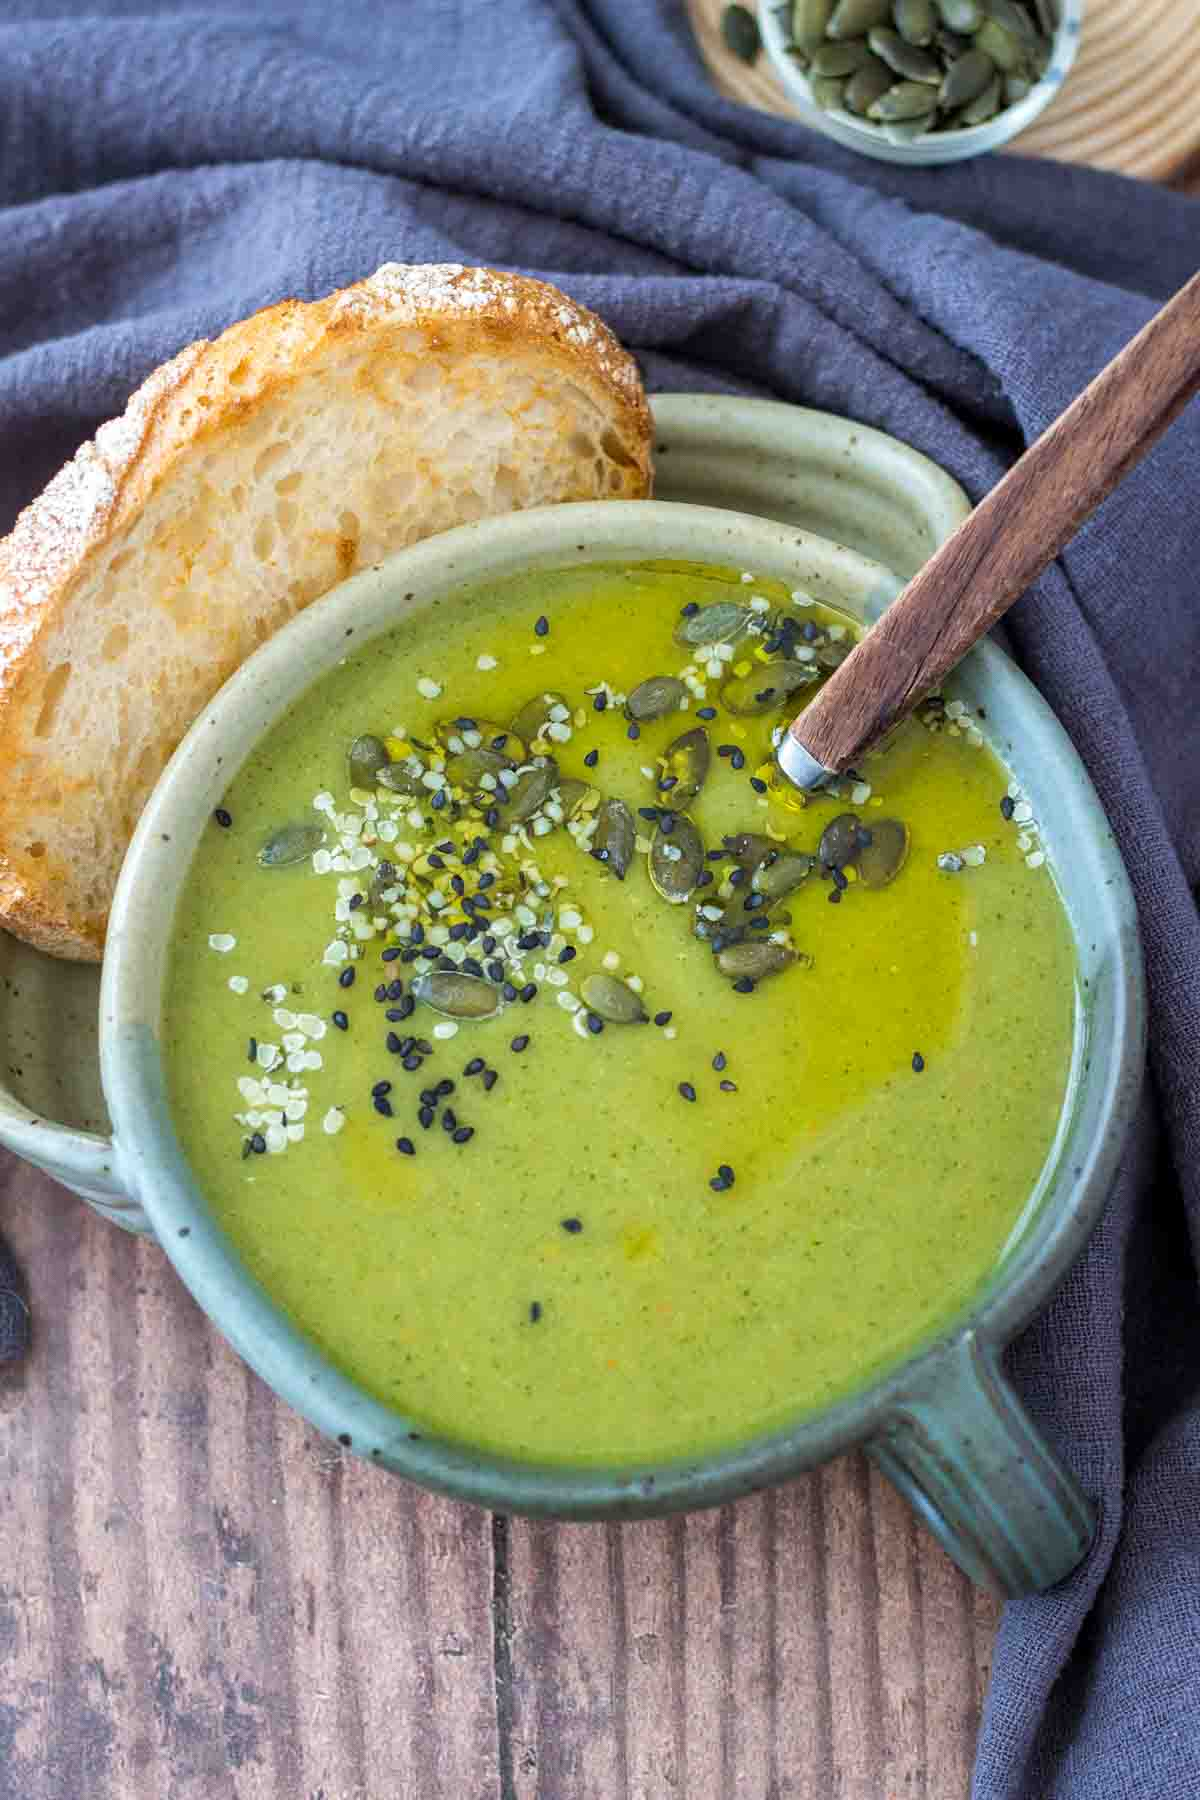 Creamy broccoli soup served in a bowl with a slice of bread, topped with pumpkin seeds.